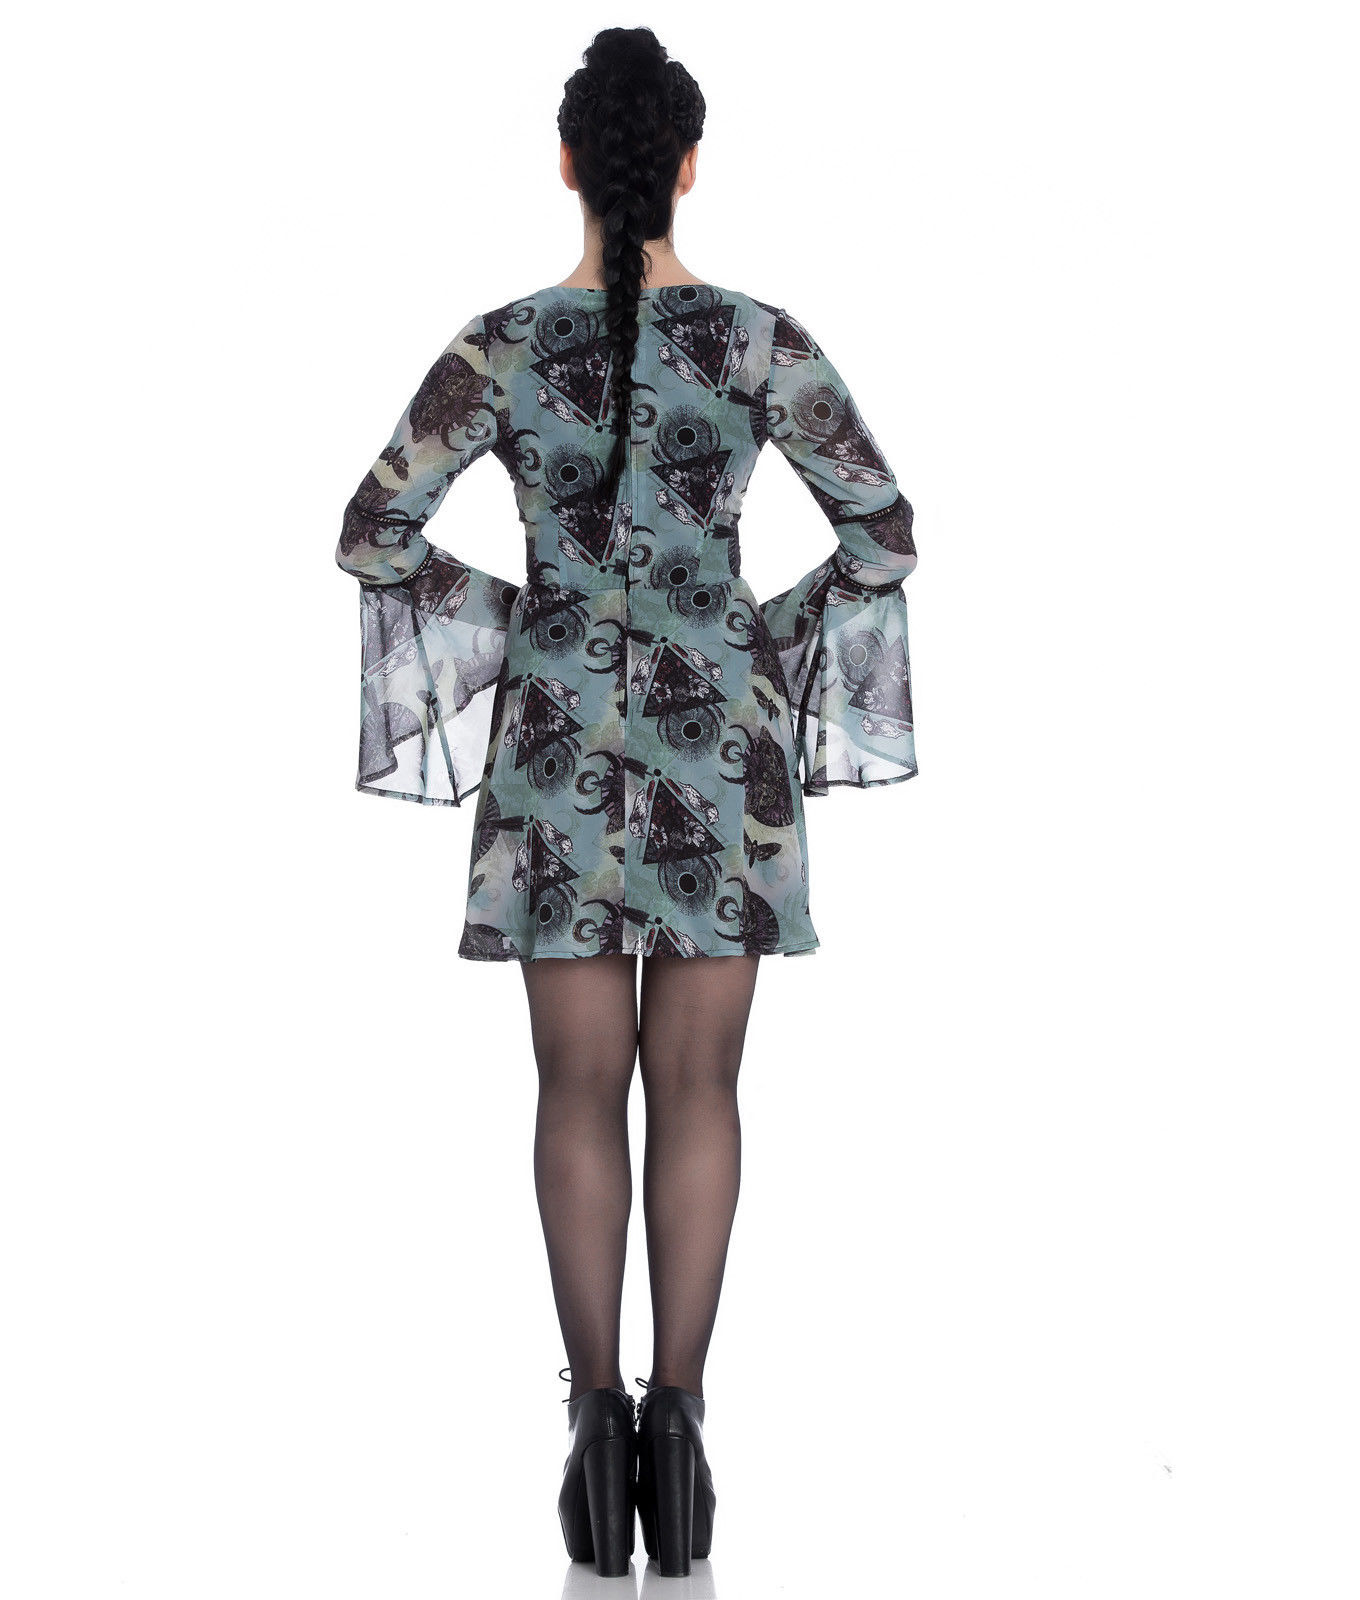 Hell-Bunny-Alchemy-Goth-Floaty-Witch-Mini-Dress-AFTER-DEATH-Teal-Green-All-Sizes thumbnail 9